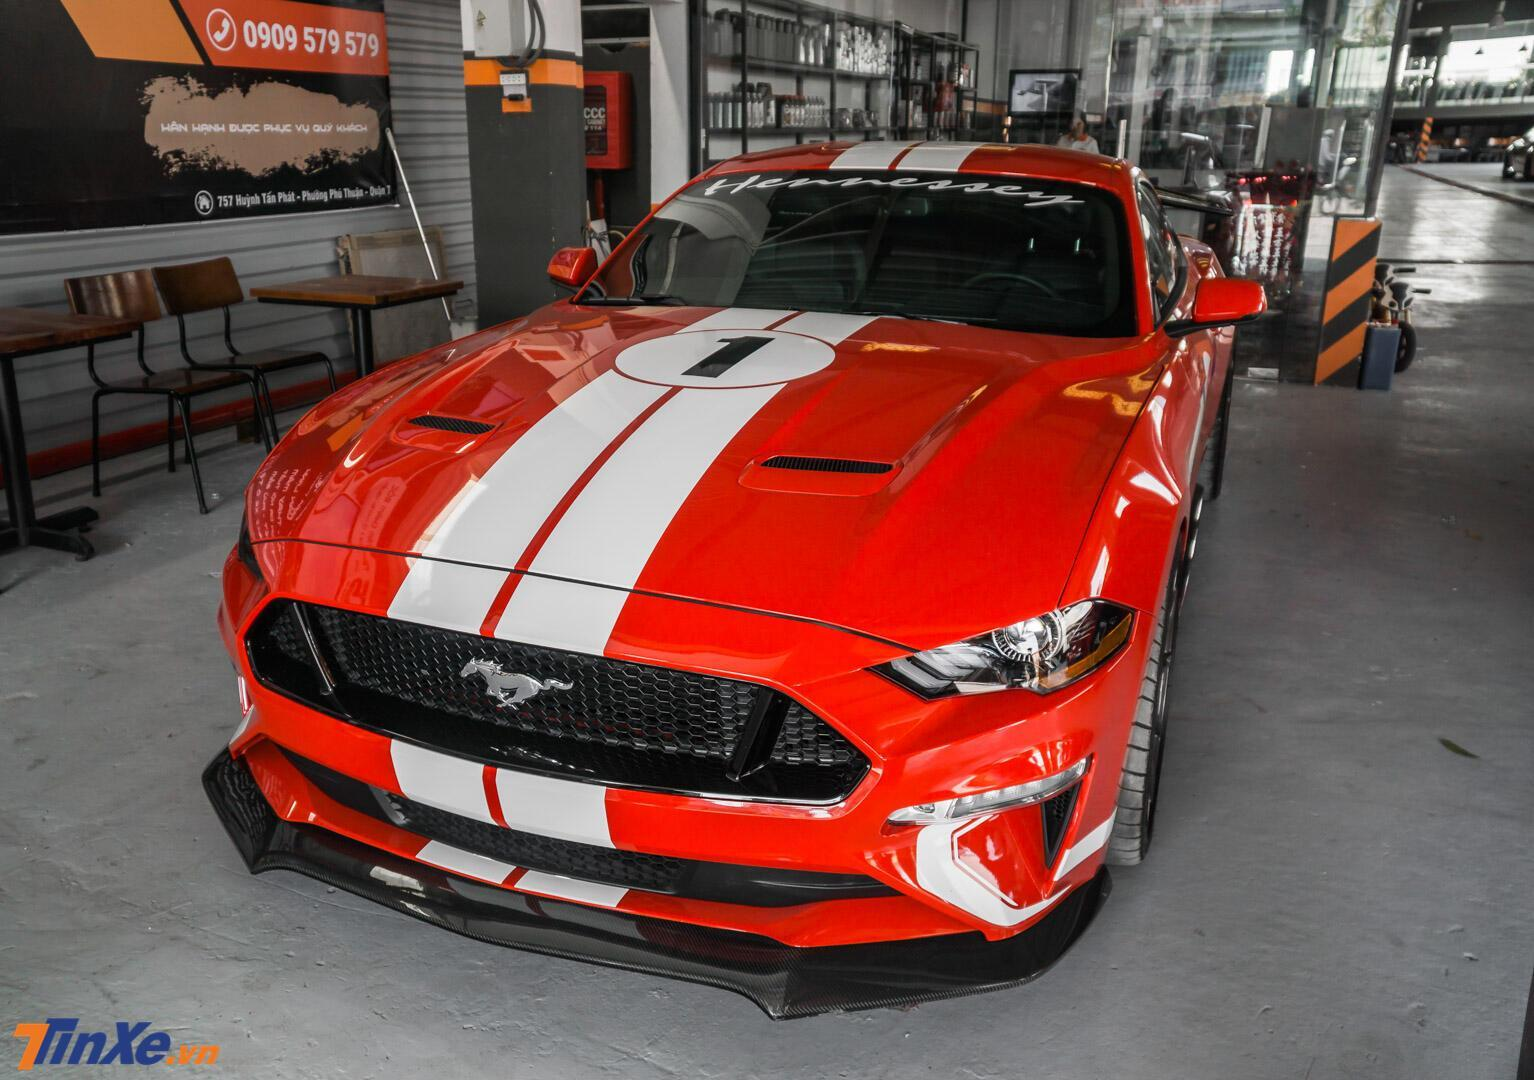 danh-gia-ford-mustang-do-hennessey-doc-nhat-viet-nam-ngua-hoang-day-cong-suat-808-ma-luc-4.jpg